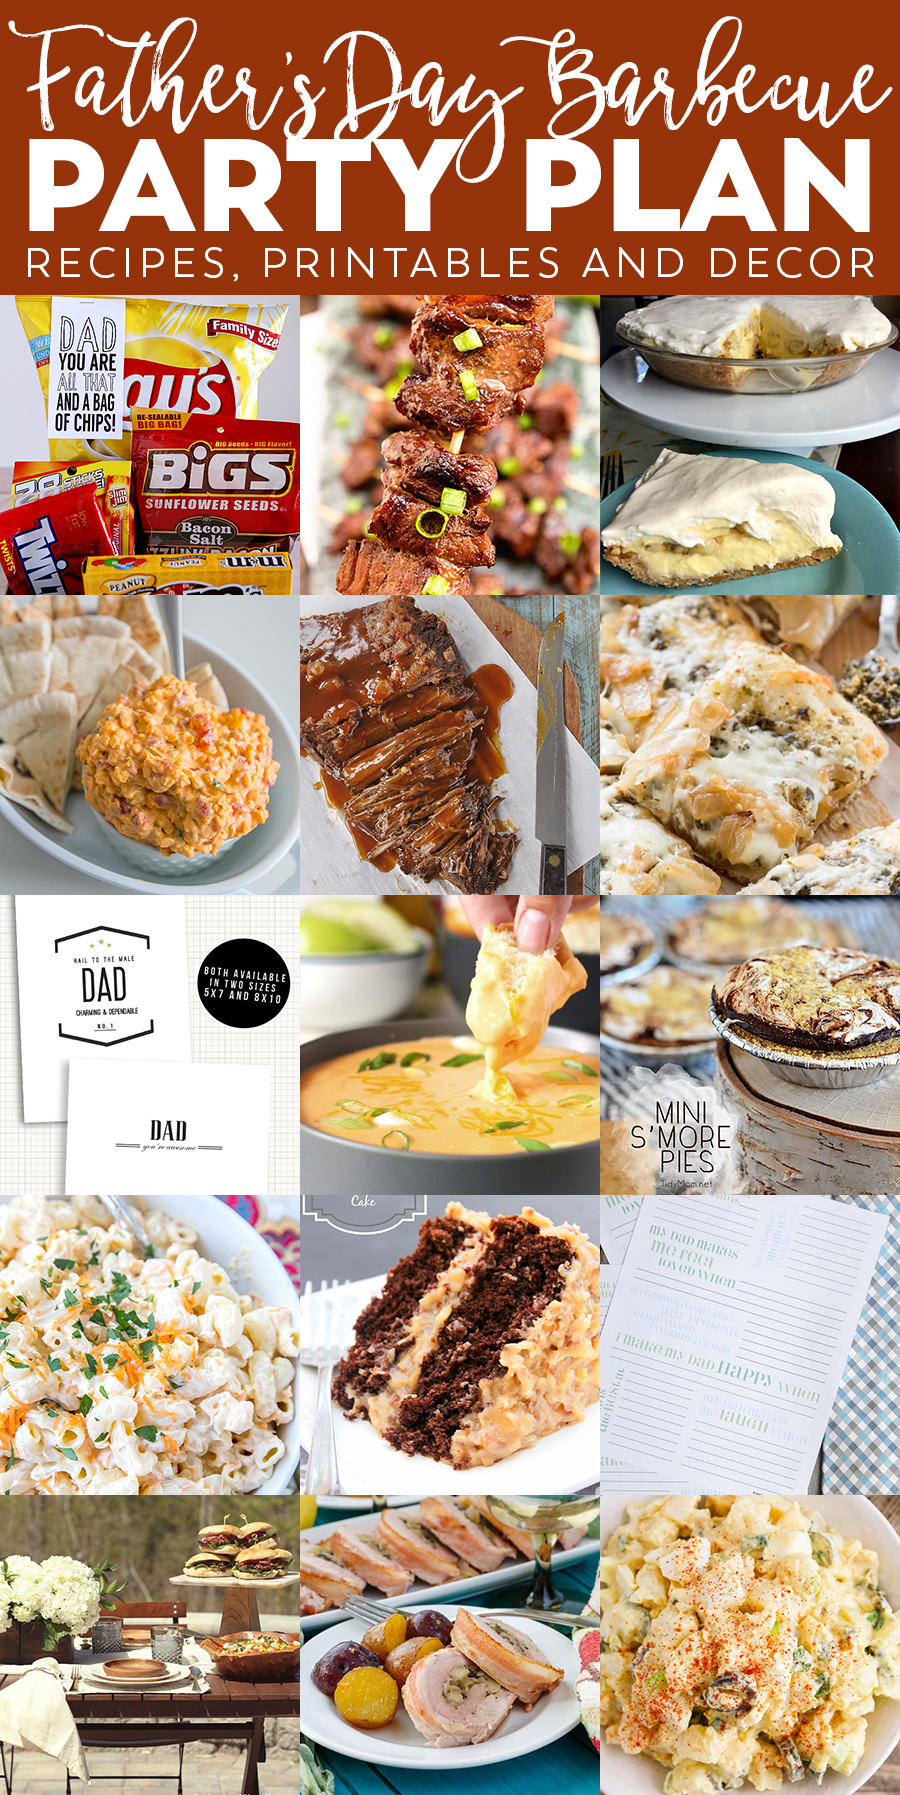 Father's Day Barbecue Party Plan - Lots of recipe ideas, printables and party decor!